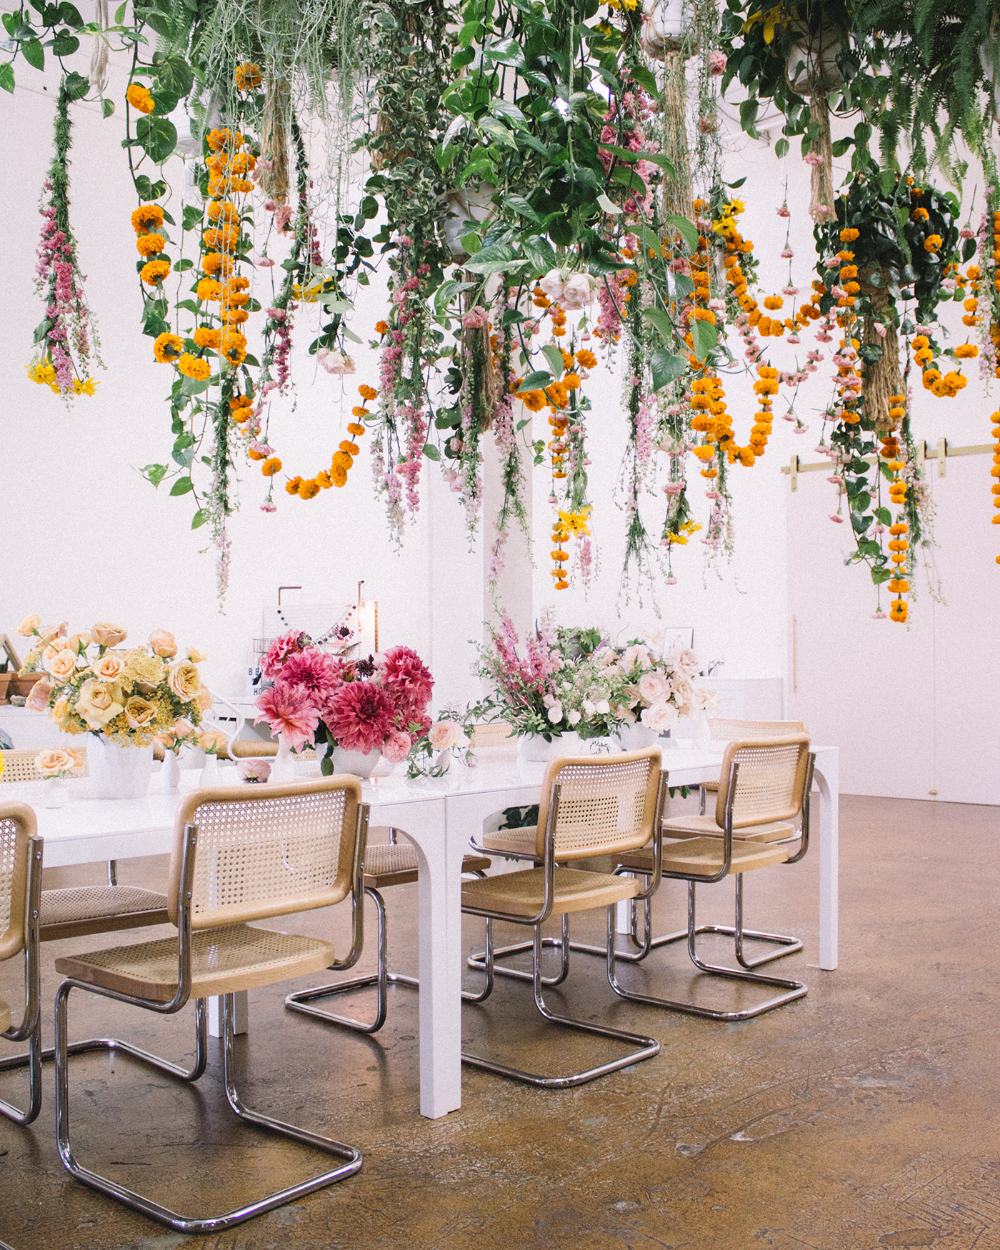 Love is in the Air! Hanging Floral Installation Ideas for the Wedding in  2020 | Wedding flower guide, Hanging wedding decorations, Hanging flowers  wedding